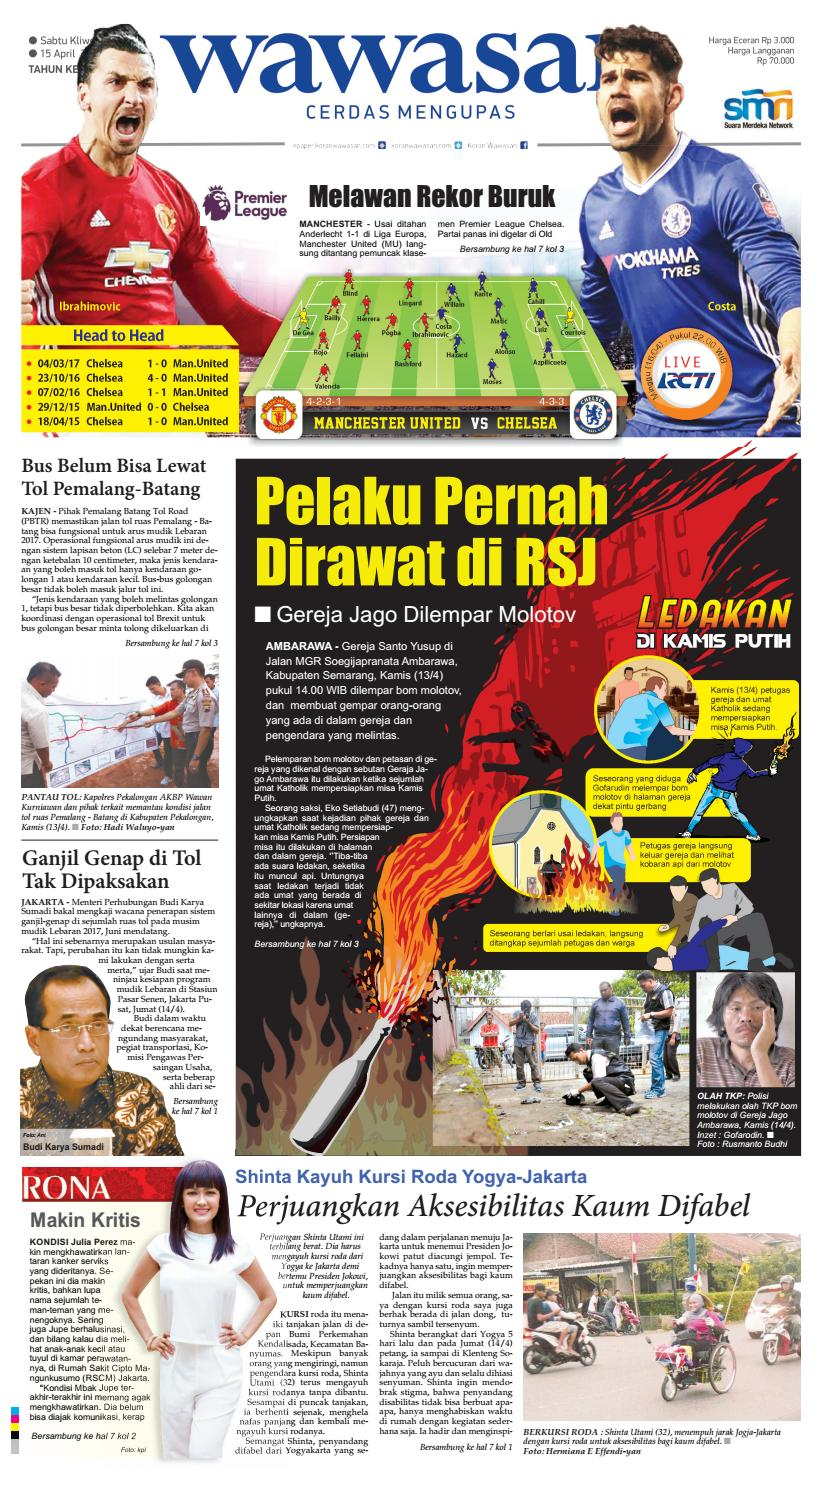 WAWASAN 15 April 2017 By KORAN PAGI WAWASAN Issuu